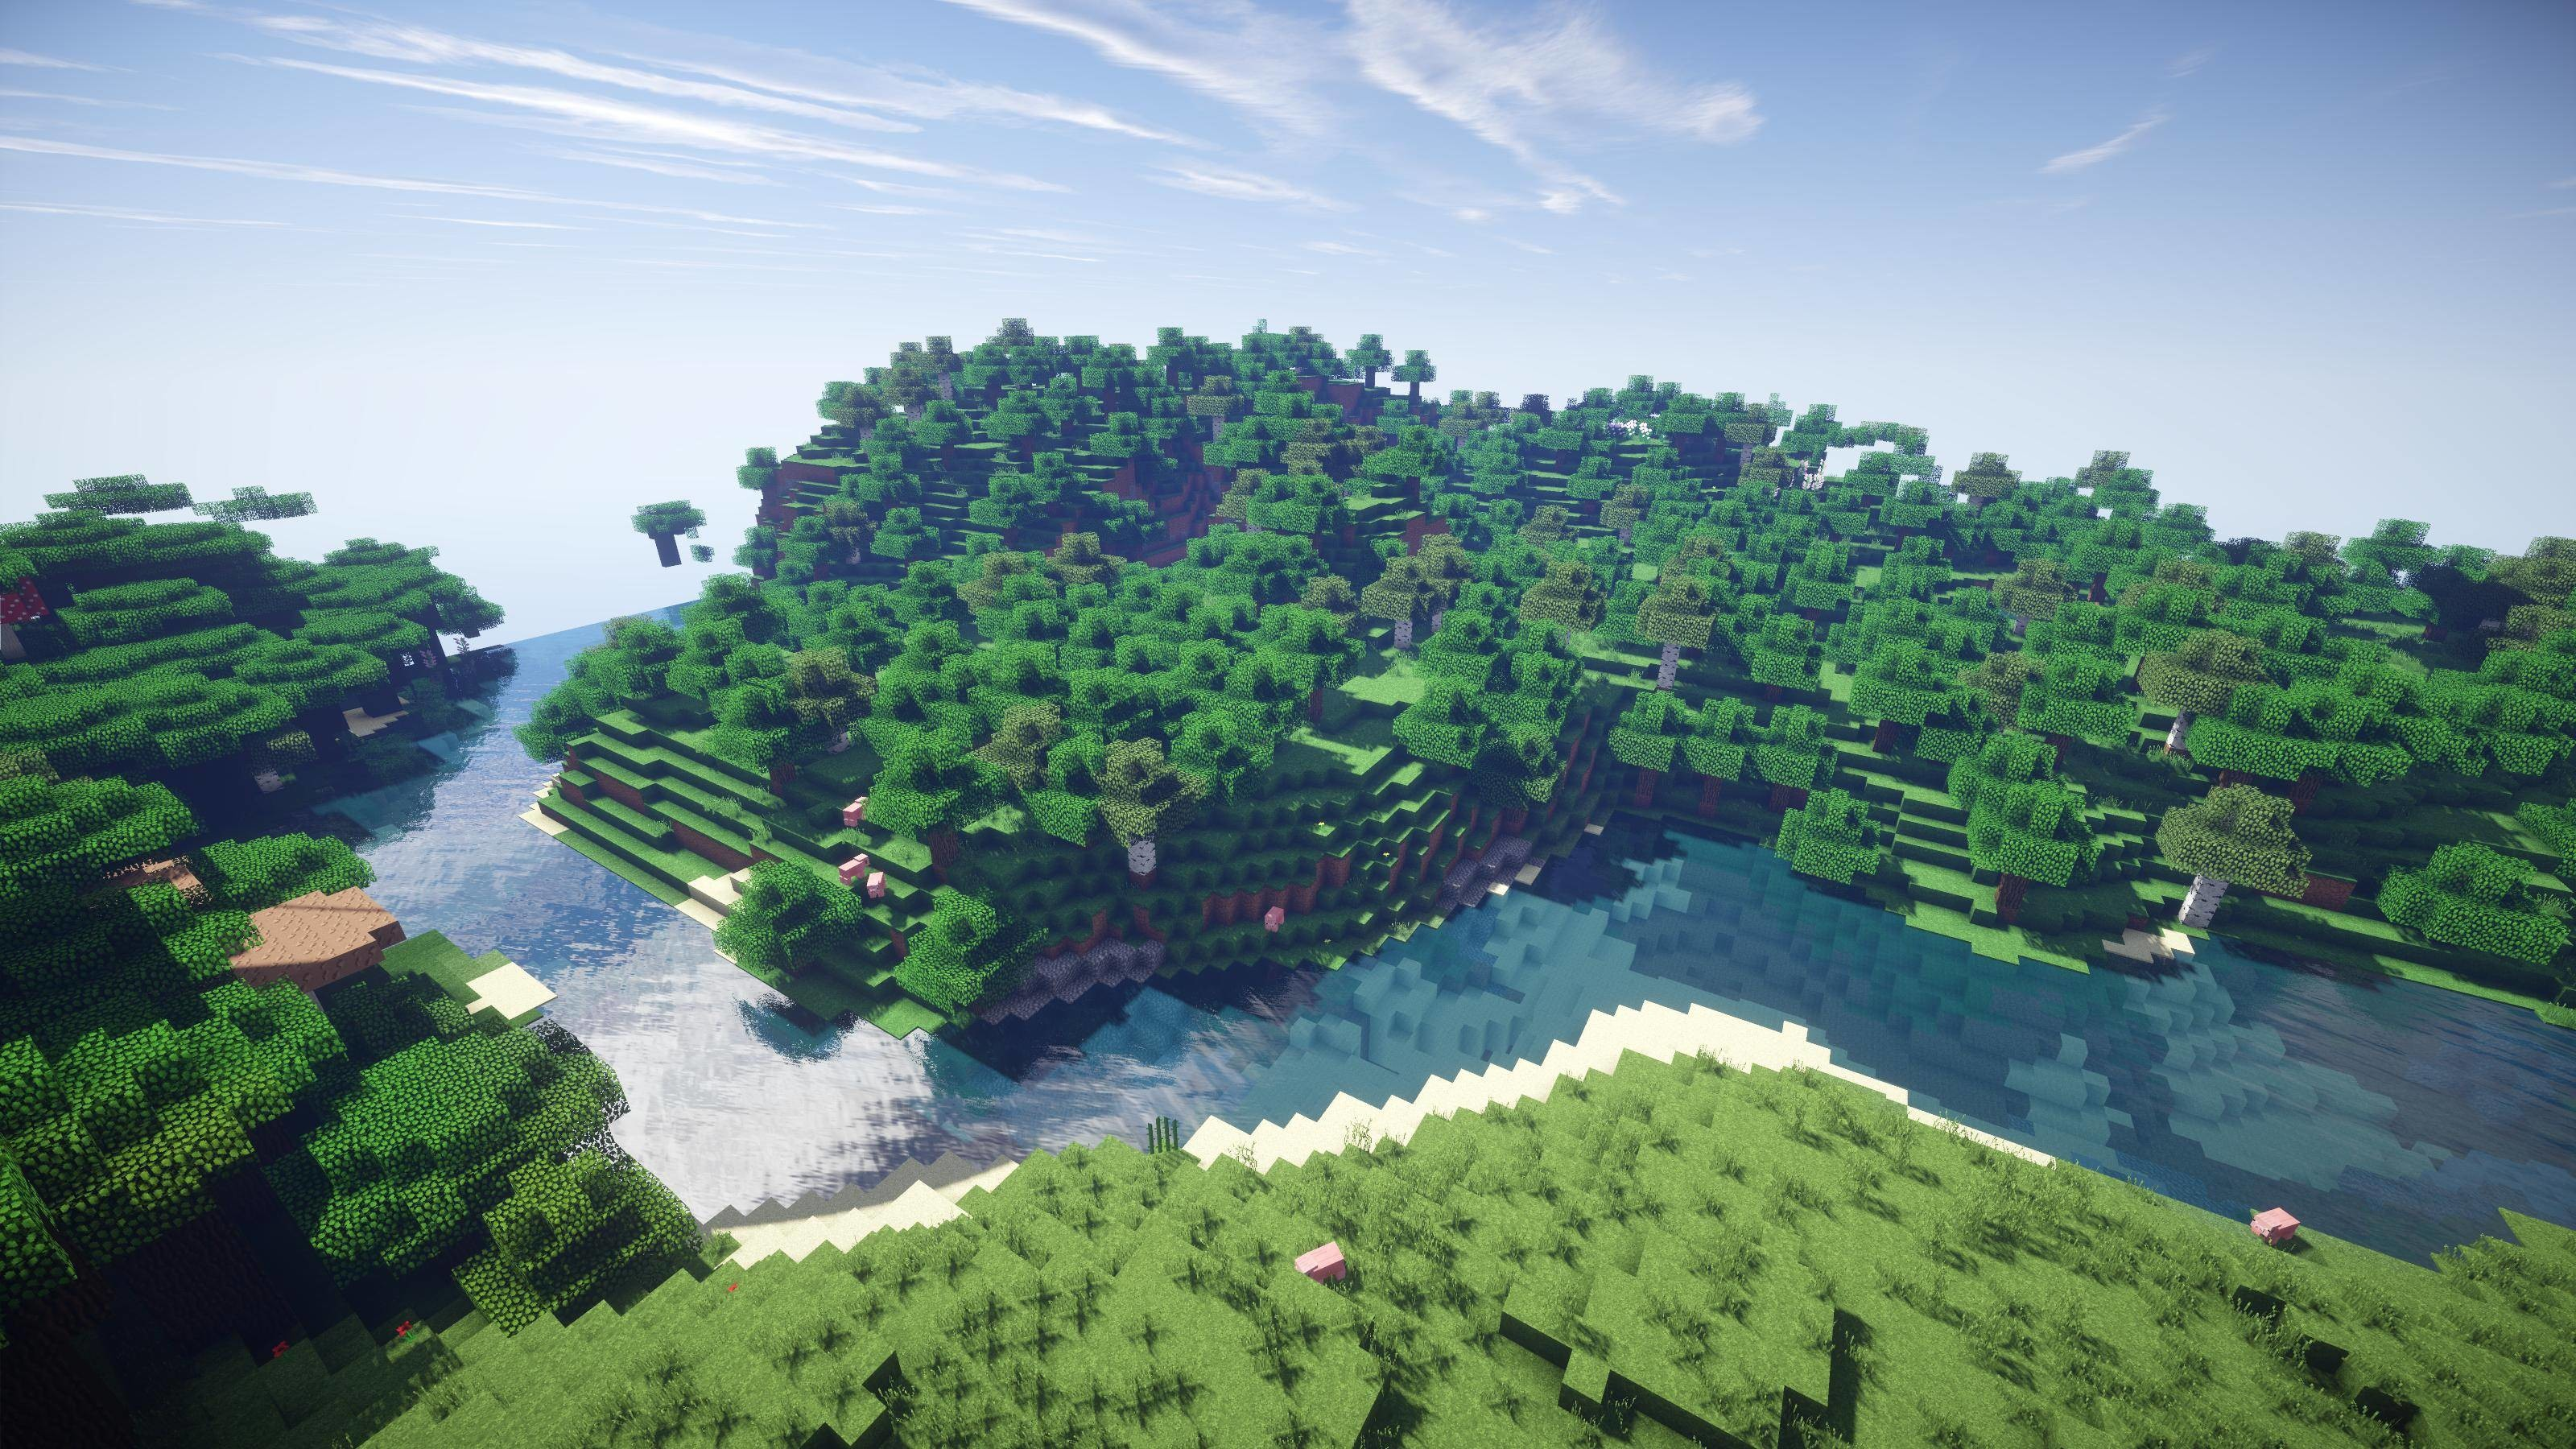 Popular Wallpaper Minecraft Home Screen - 410081-download-free-minecraft-background-hd-3200x1800-free-download  Perfect Image Reference_934072.jpg